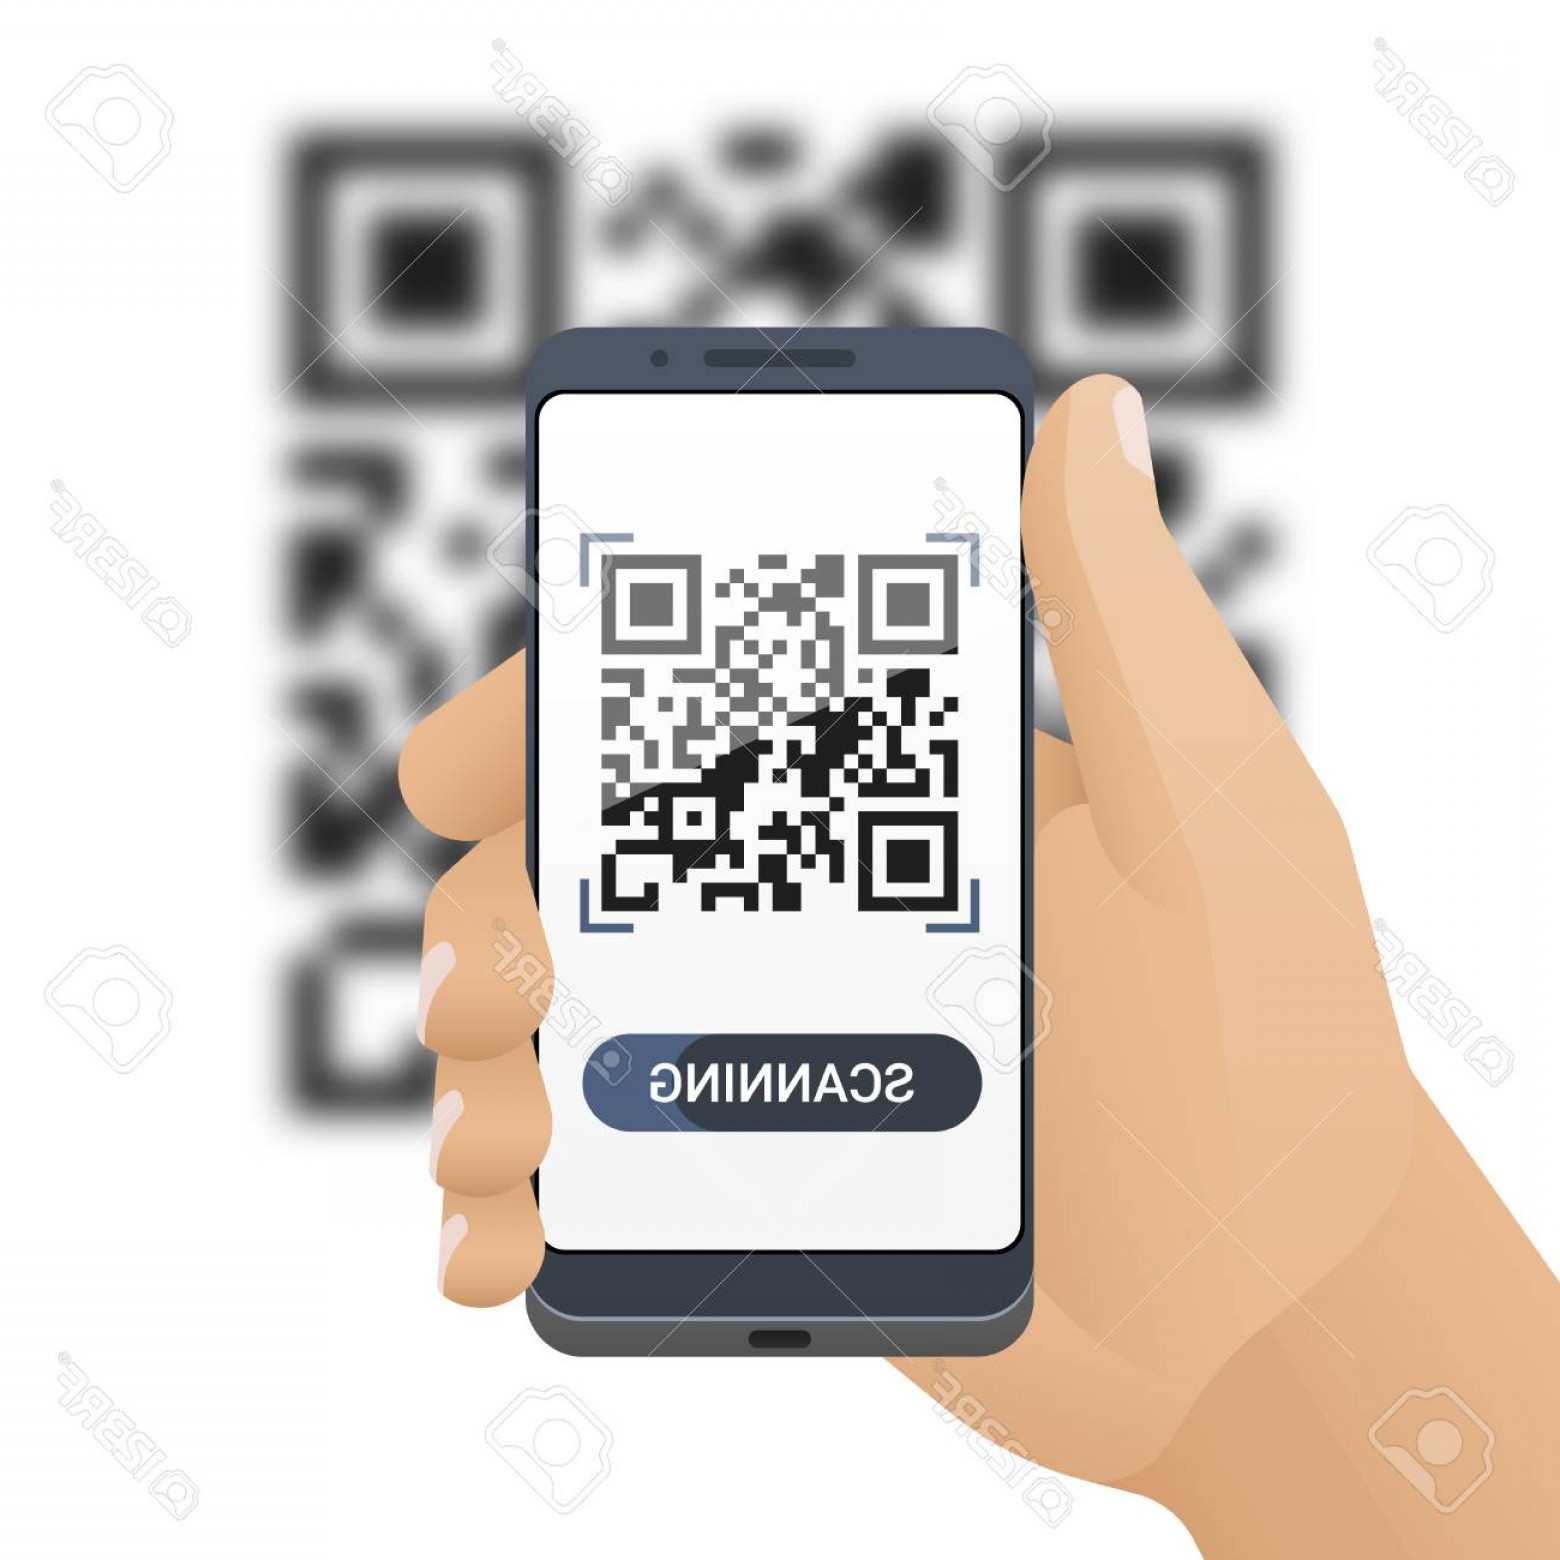 QR Mobile Phone Vector: Photostock Vector Smartphone In Man S Hand Scans Qr Code Barcode Scanner Application On Smart Phone Screen And Blurred